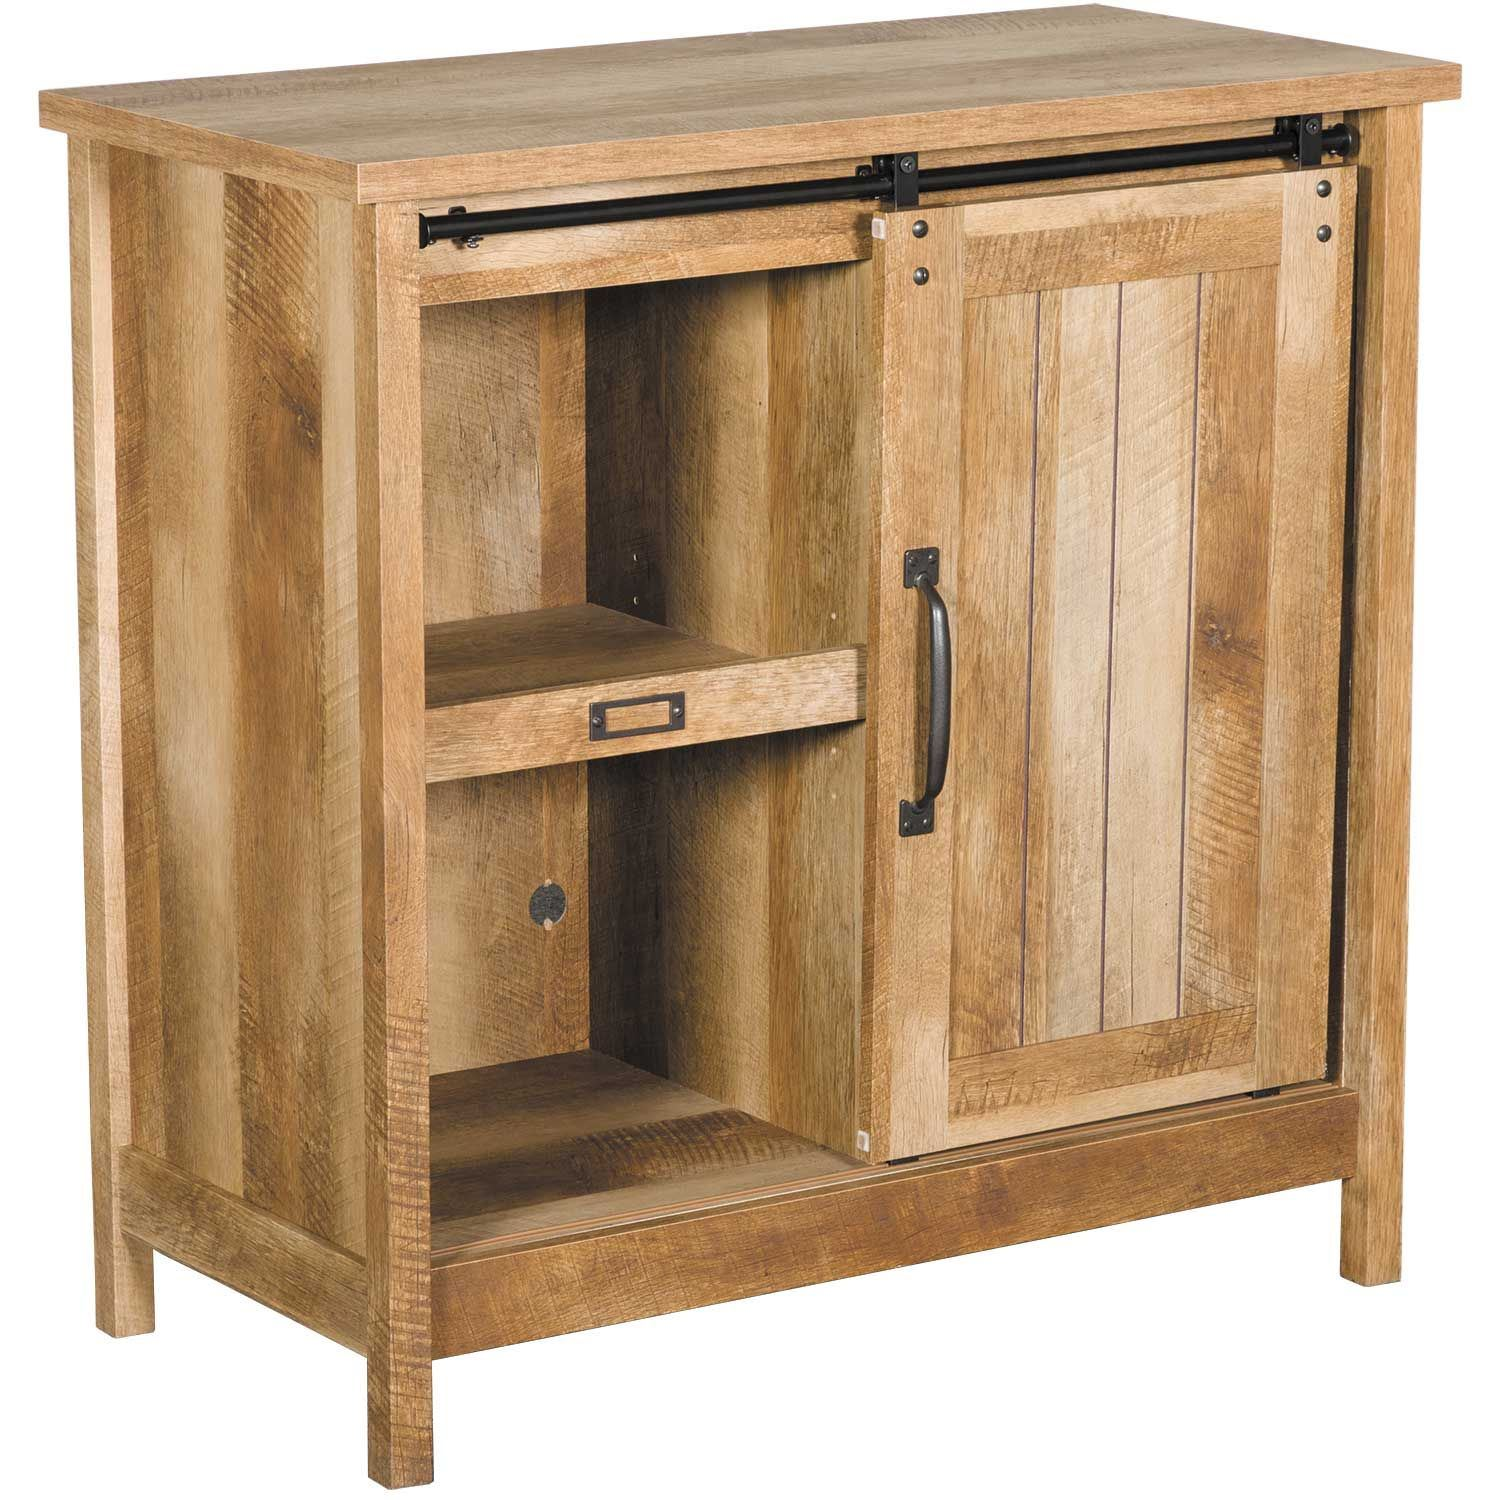 Dakota Accent Cabinet  422473  Sauder Woodworking  AFWcom